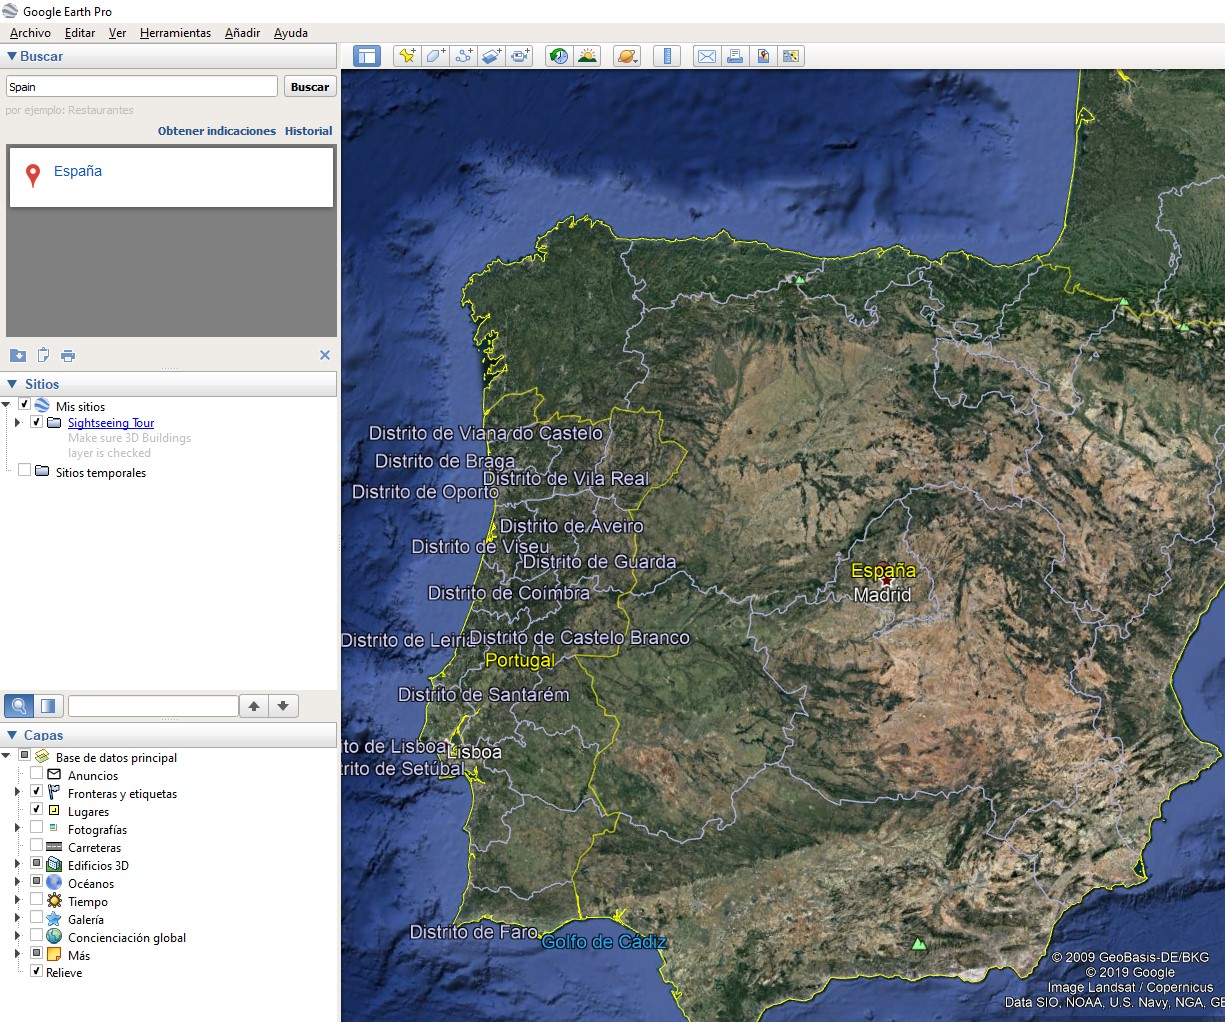 Interfaz de usuario de Google Earth Pro